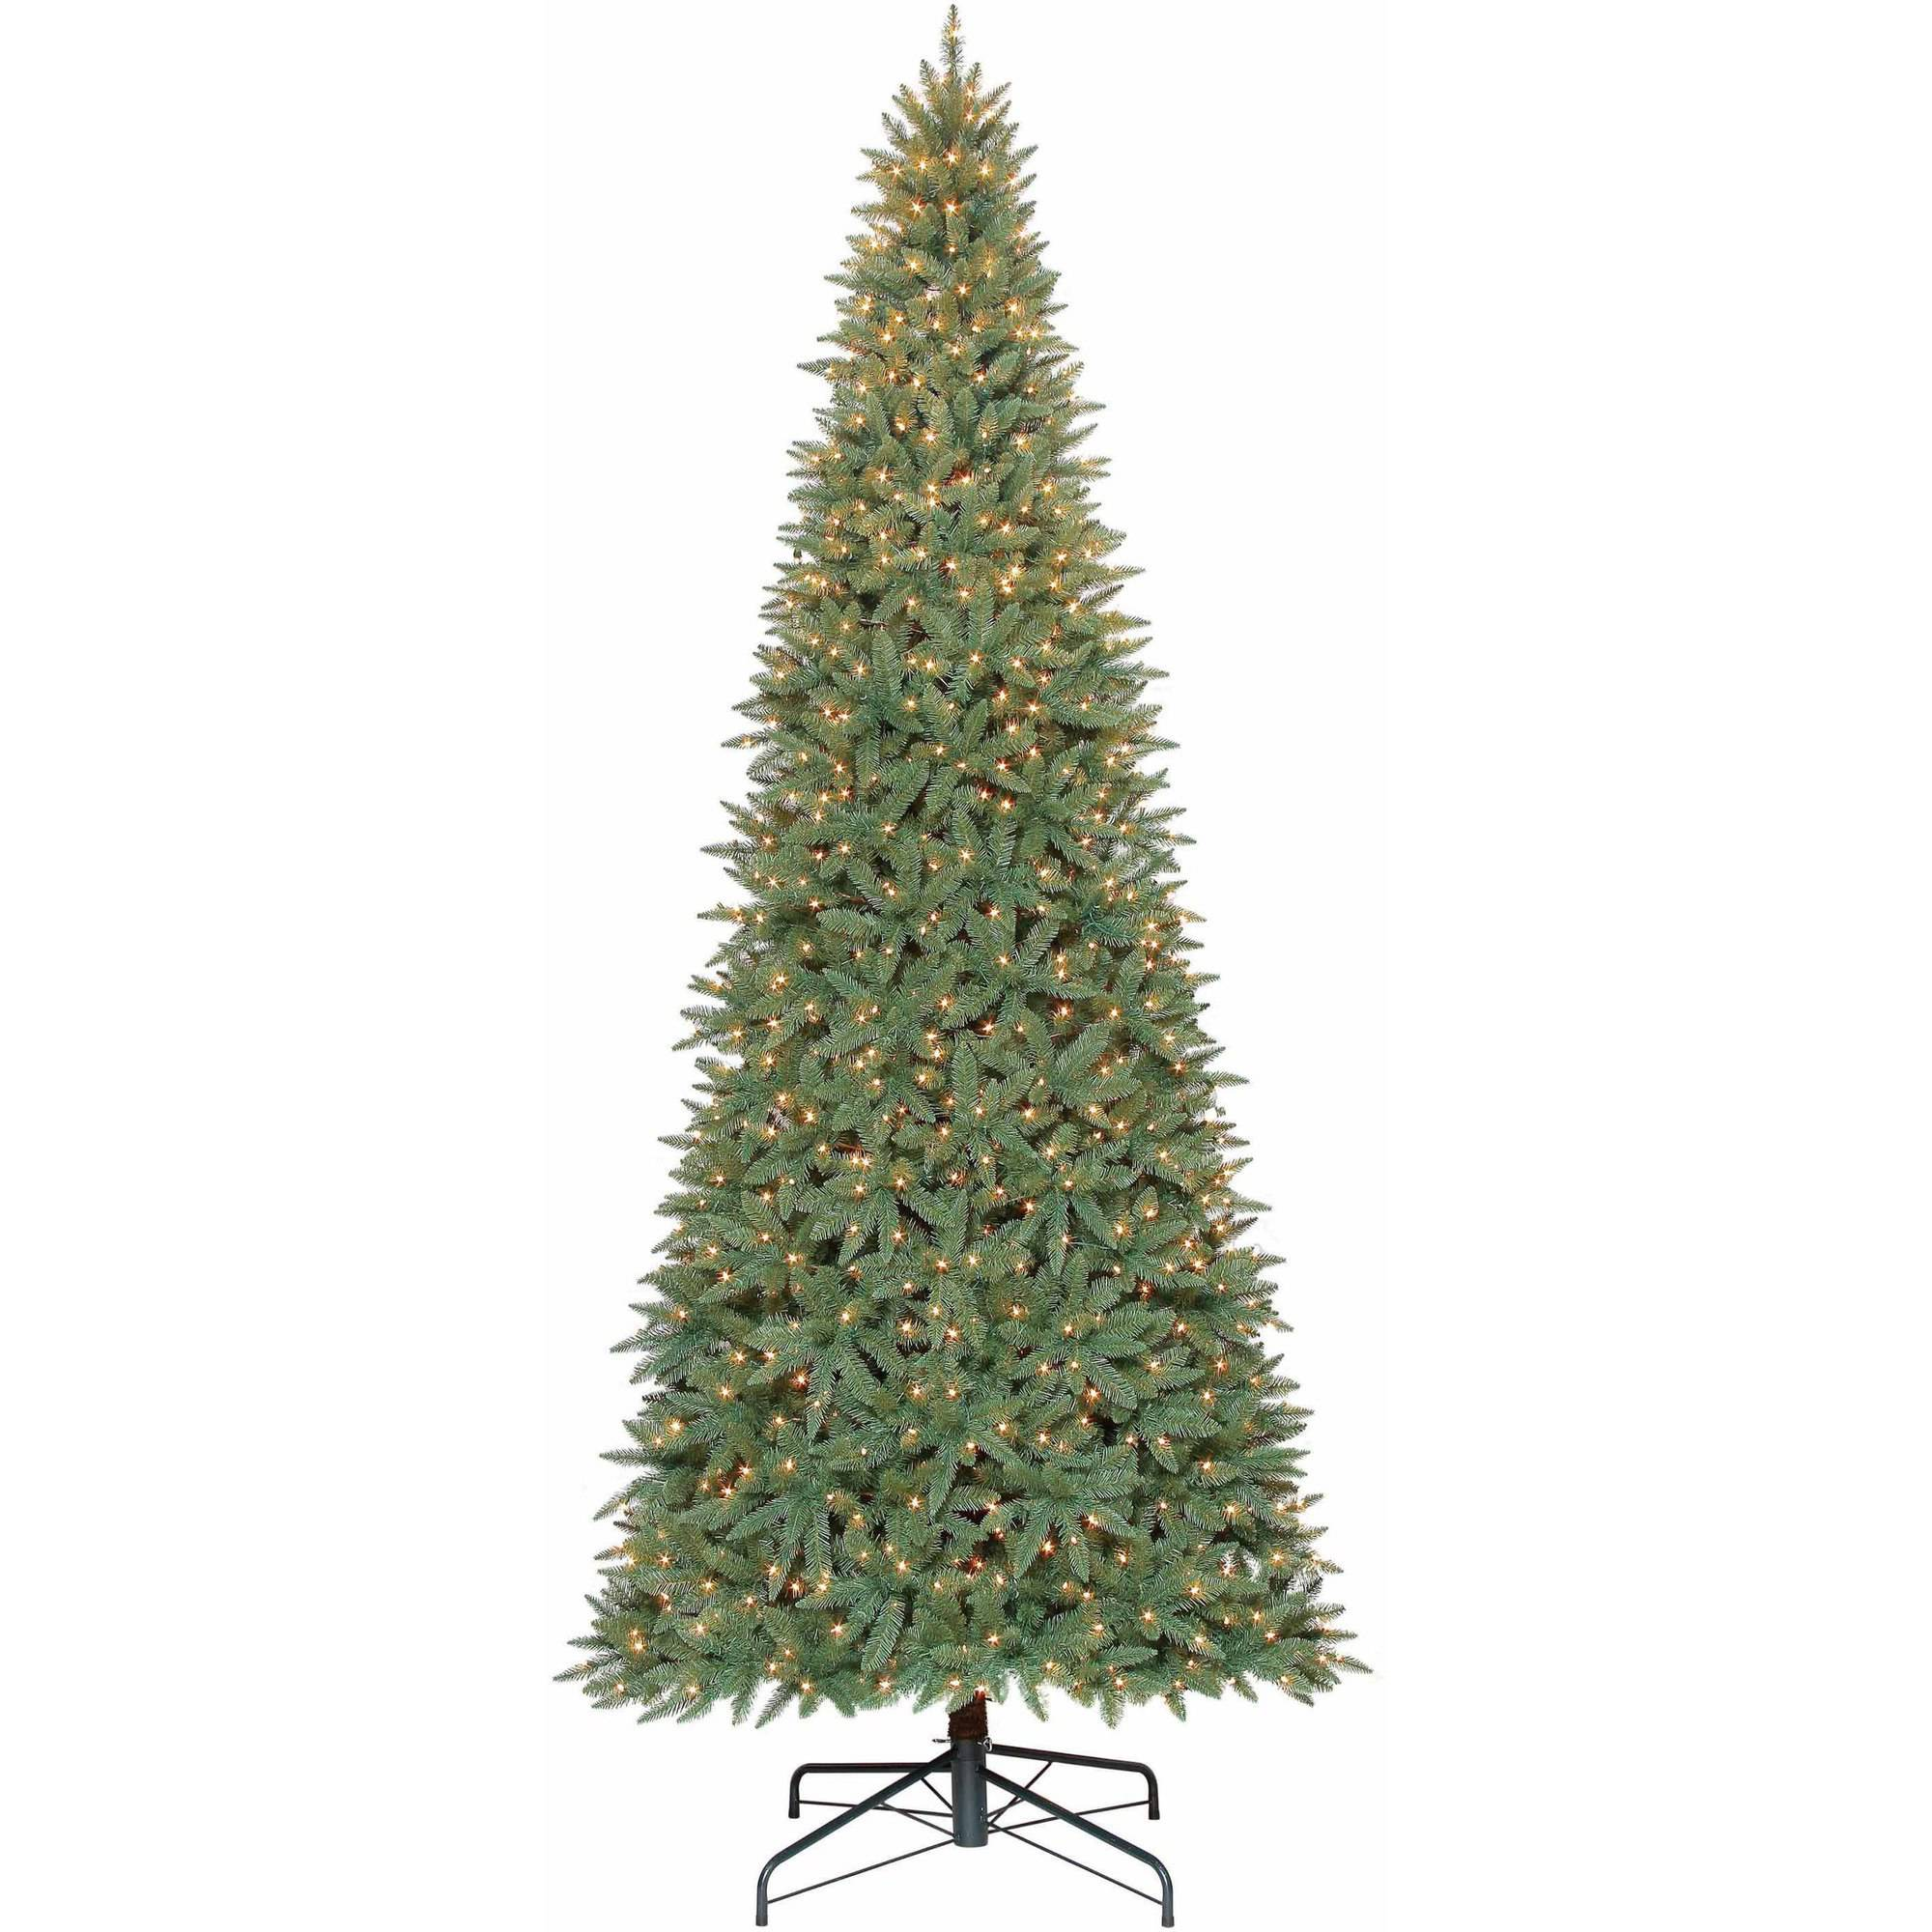 Slim white christmas tree with lights - Holiday Time Pre Lit 12 Williams Pine Artificial Christmas Tree Clear Lights Walmart Com